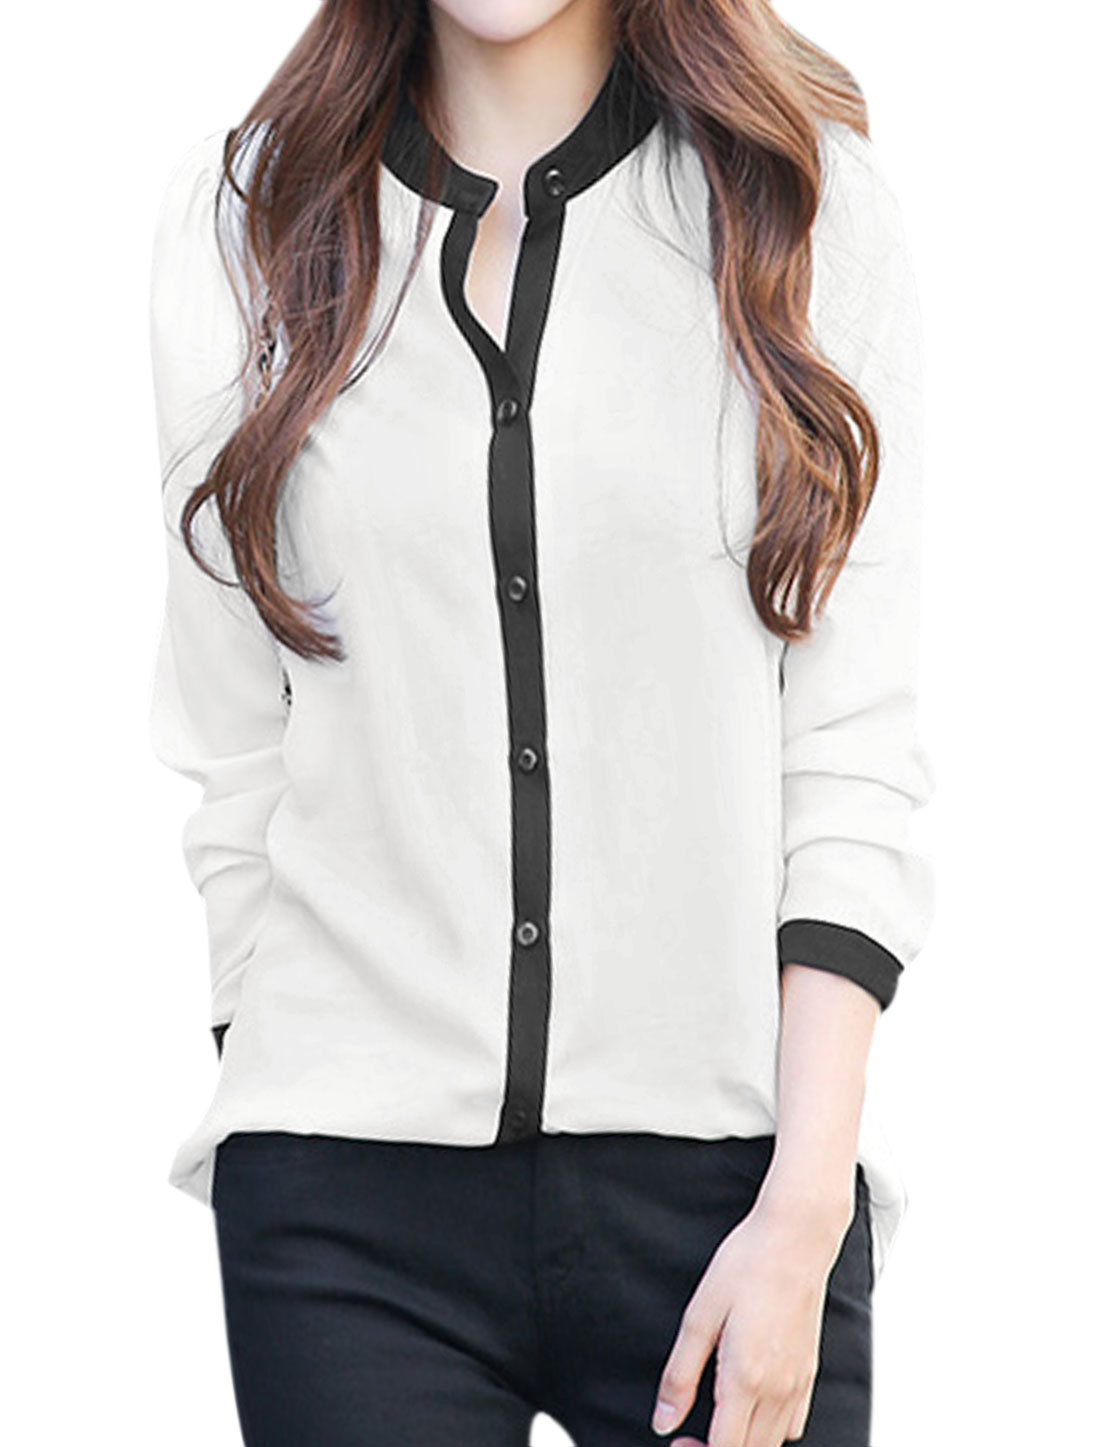 Lady Stand Collar Long Sleeves Button Closed Chiffon Blouses White S